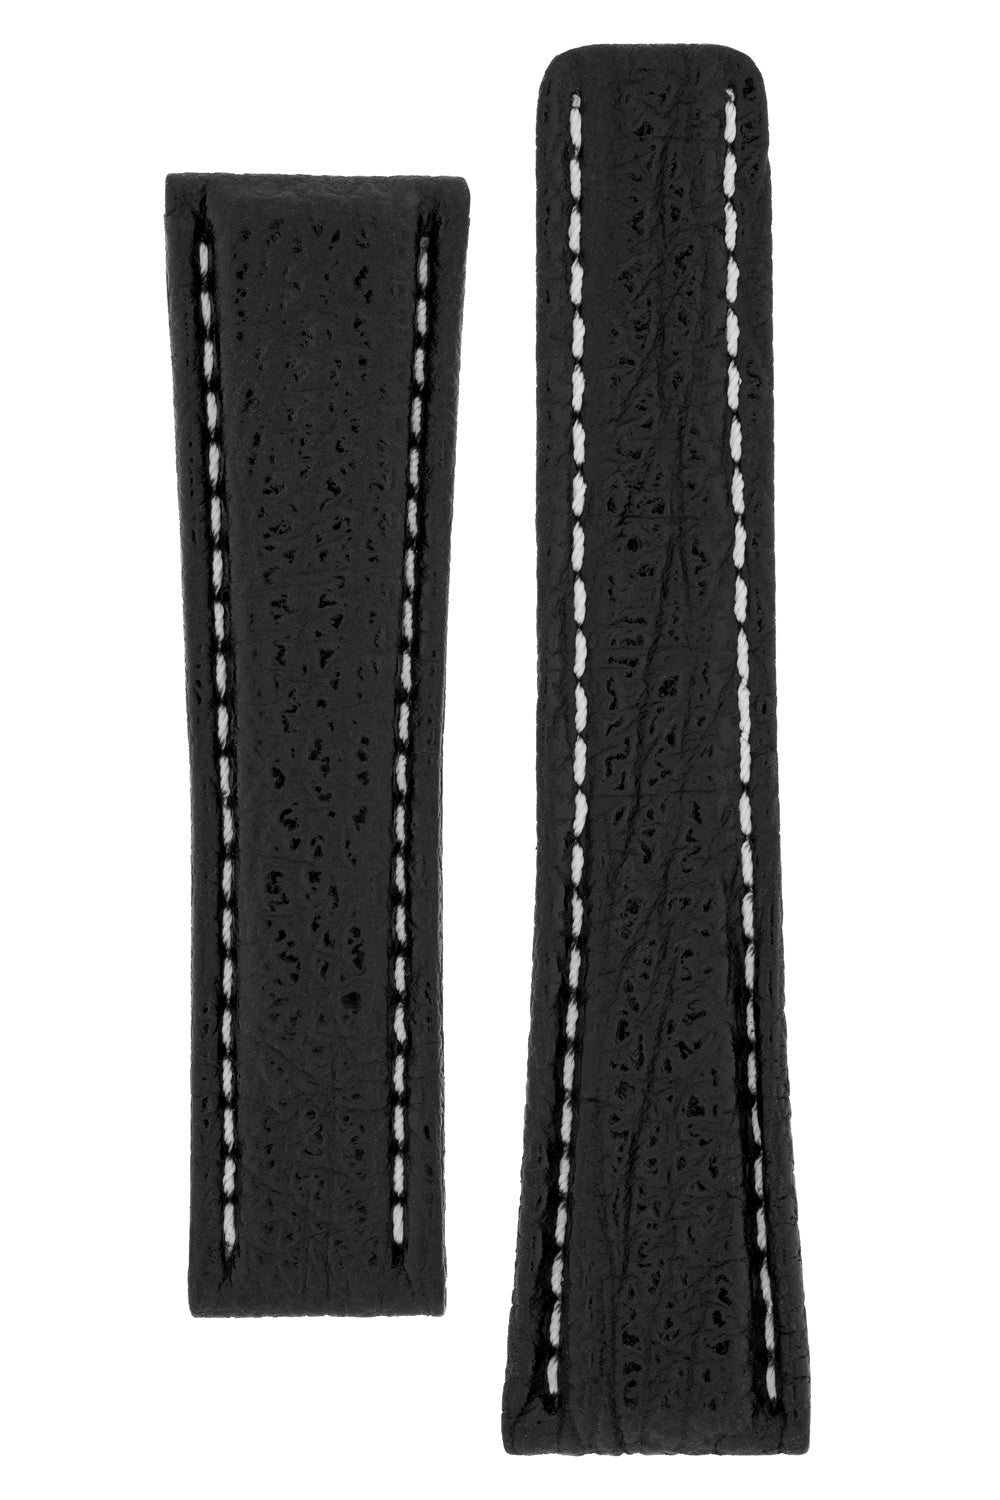 Breitling-Style Shark Deployment Watch Strap in BLACK